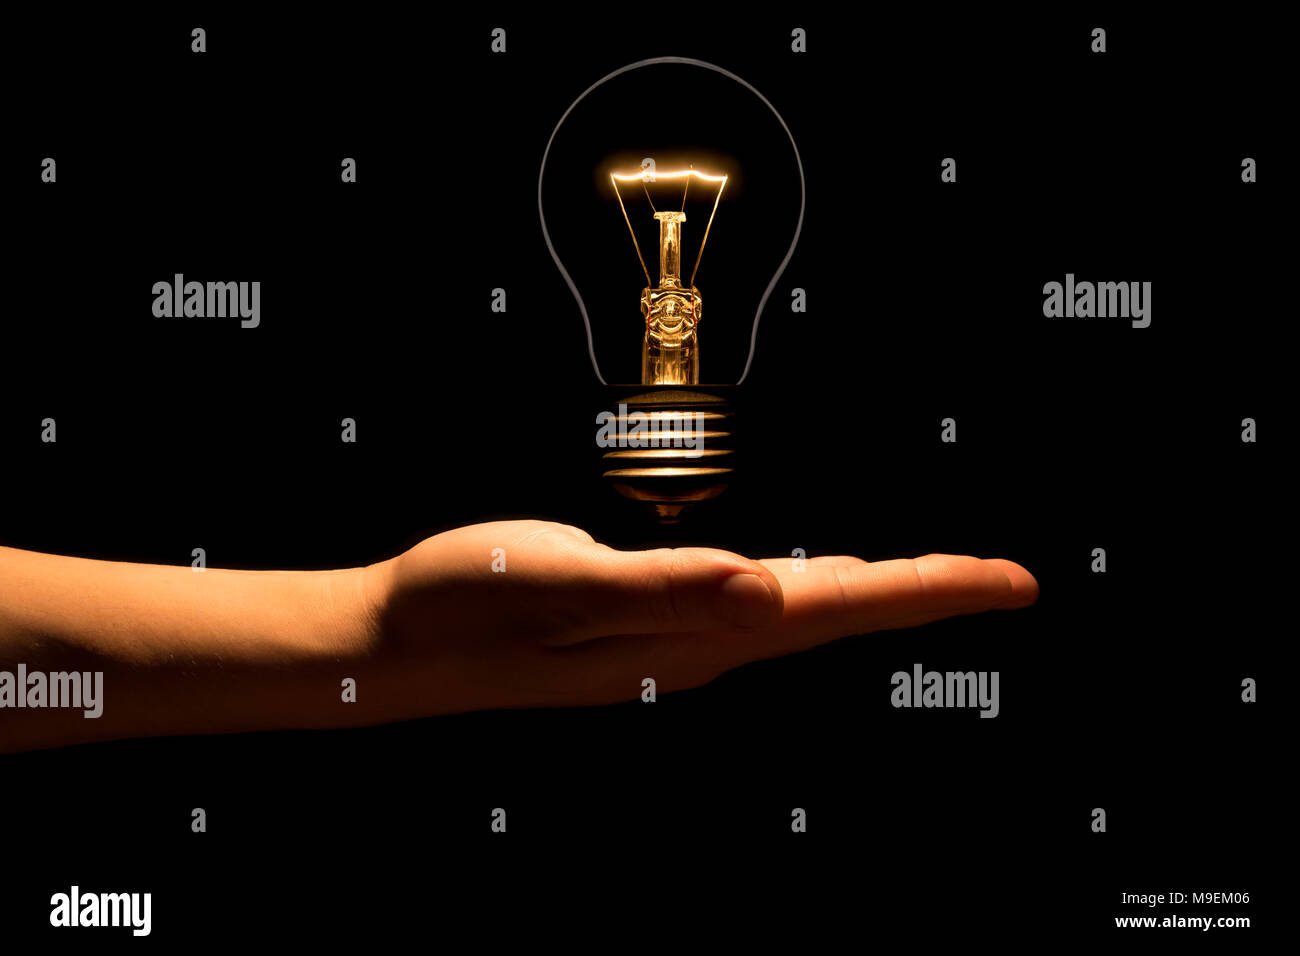 Hand Holding A Filament Lamp On A Black Background The Bulb As A